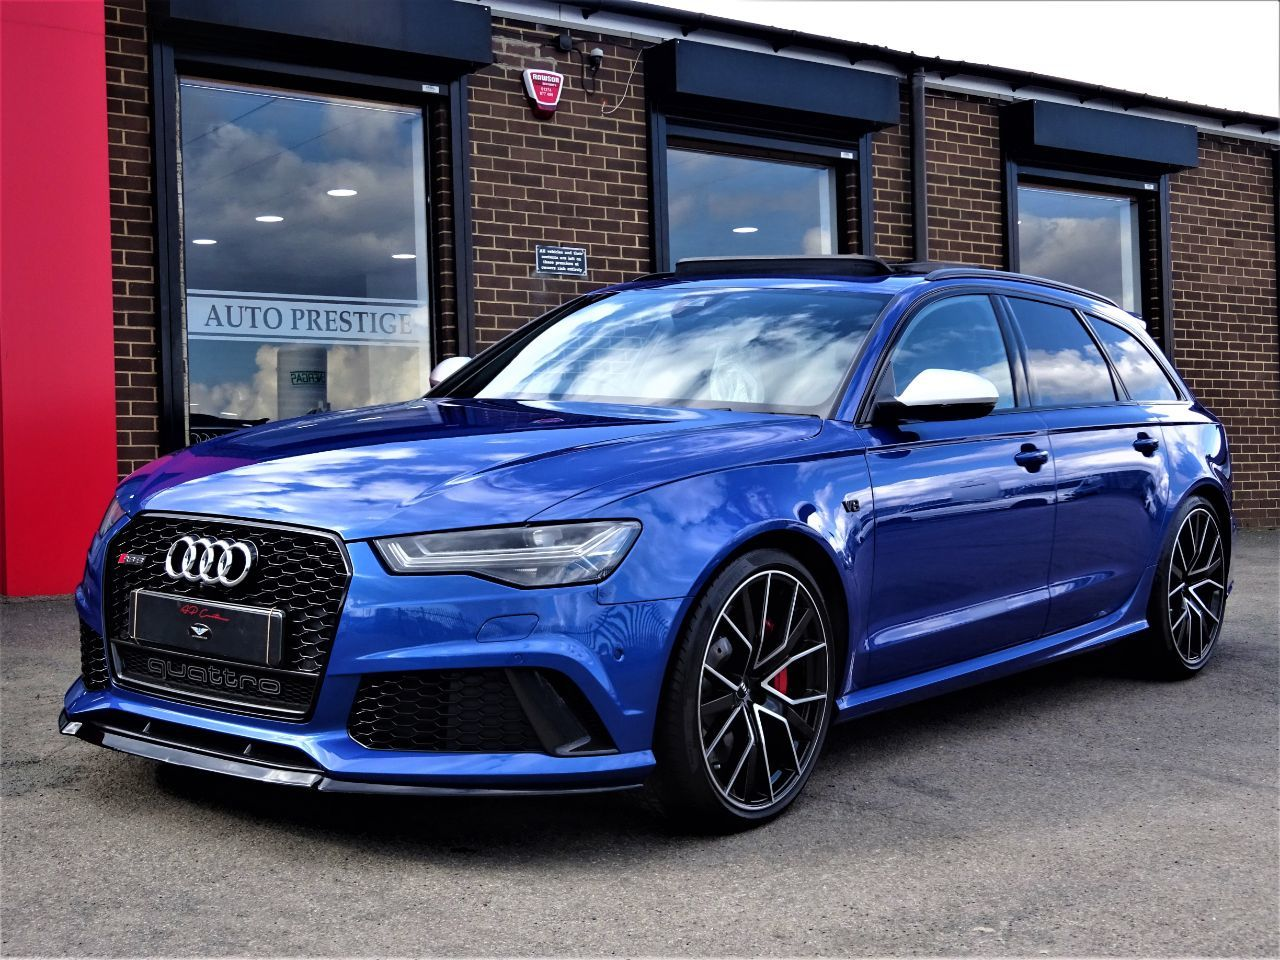 Audi RS6 4.0T FSI Quattro Performance 5dr Tip Auto 2018 MODEL AS BRAND NEW MASSIVE SPEC CARBON PACK PAN ROOF Estate Petrol BlueAudi RS6 4.0T FSI Quattro Performance 5dr Tip Auto 2018 MODEL AS BRAND NEW MASSIVE SPEC CARBON PACK PAN ROOF Estate Petrol Blue at Autoprestige Bradford